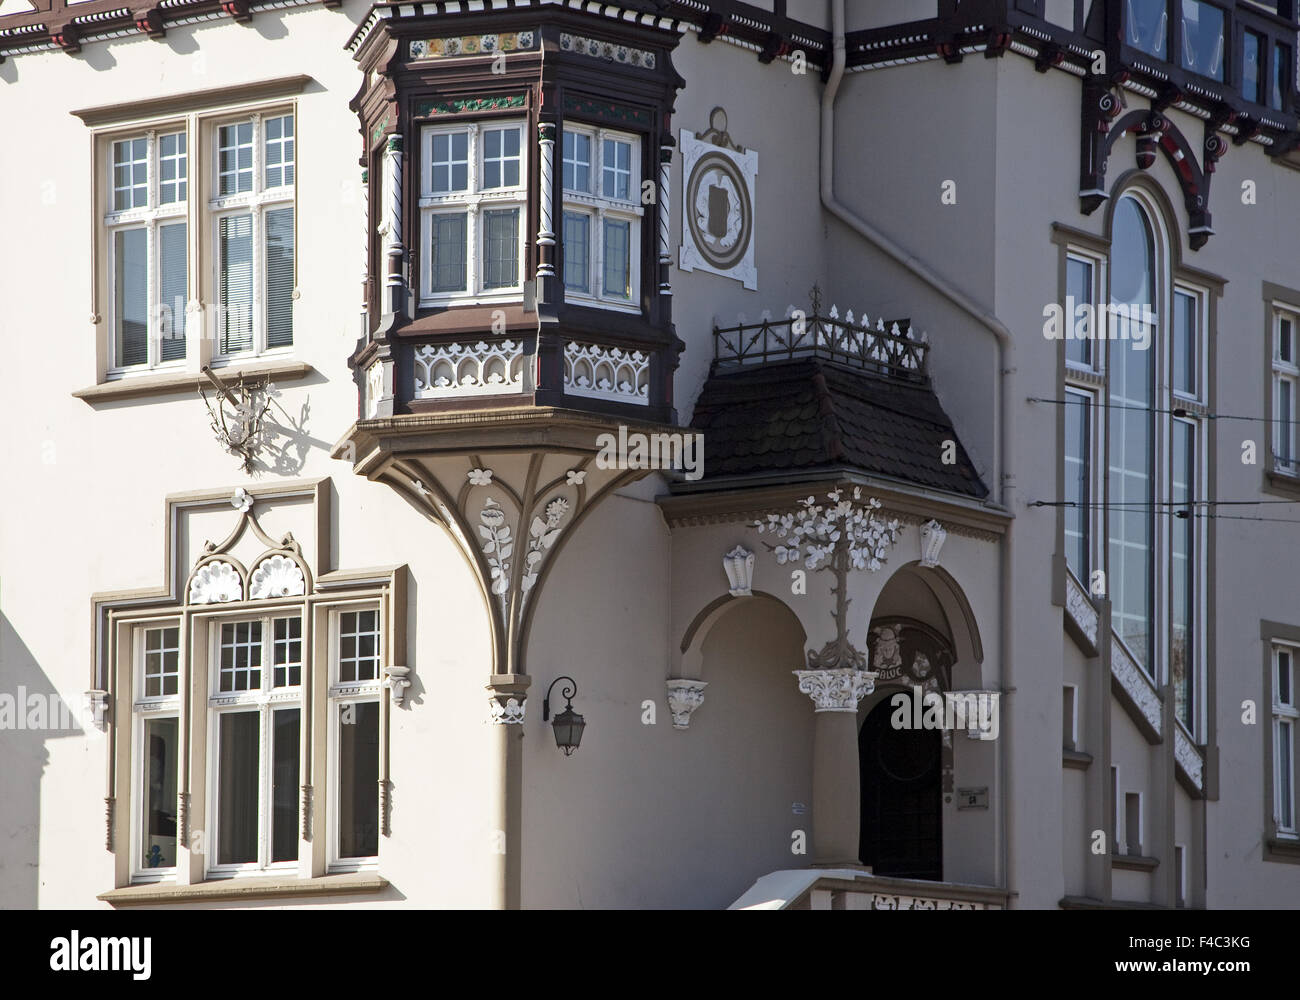 Detail of a house, Recklinghausen, Germany - Stock Image